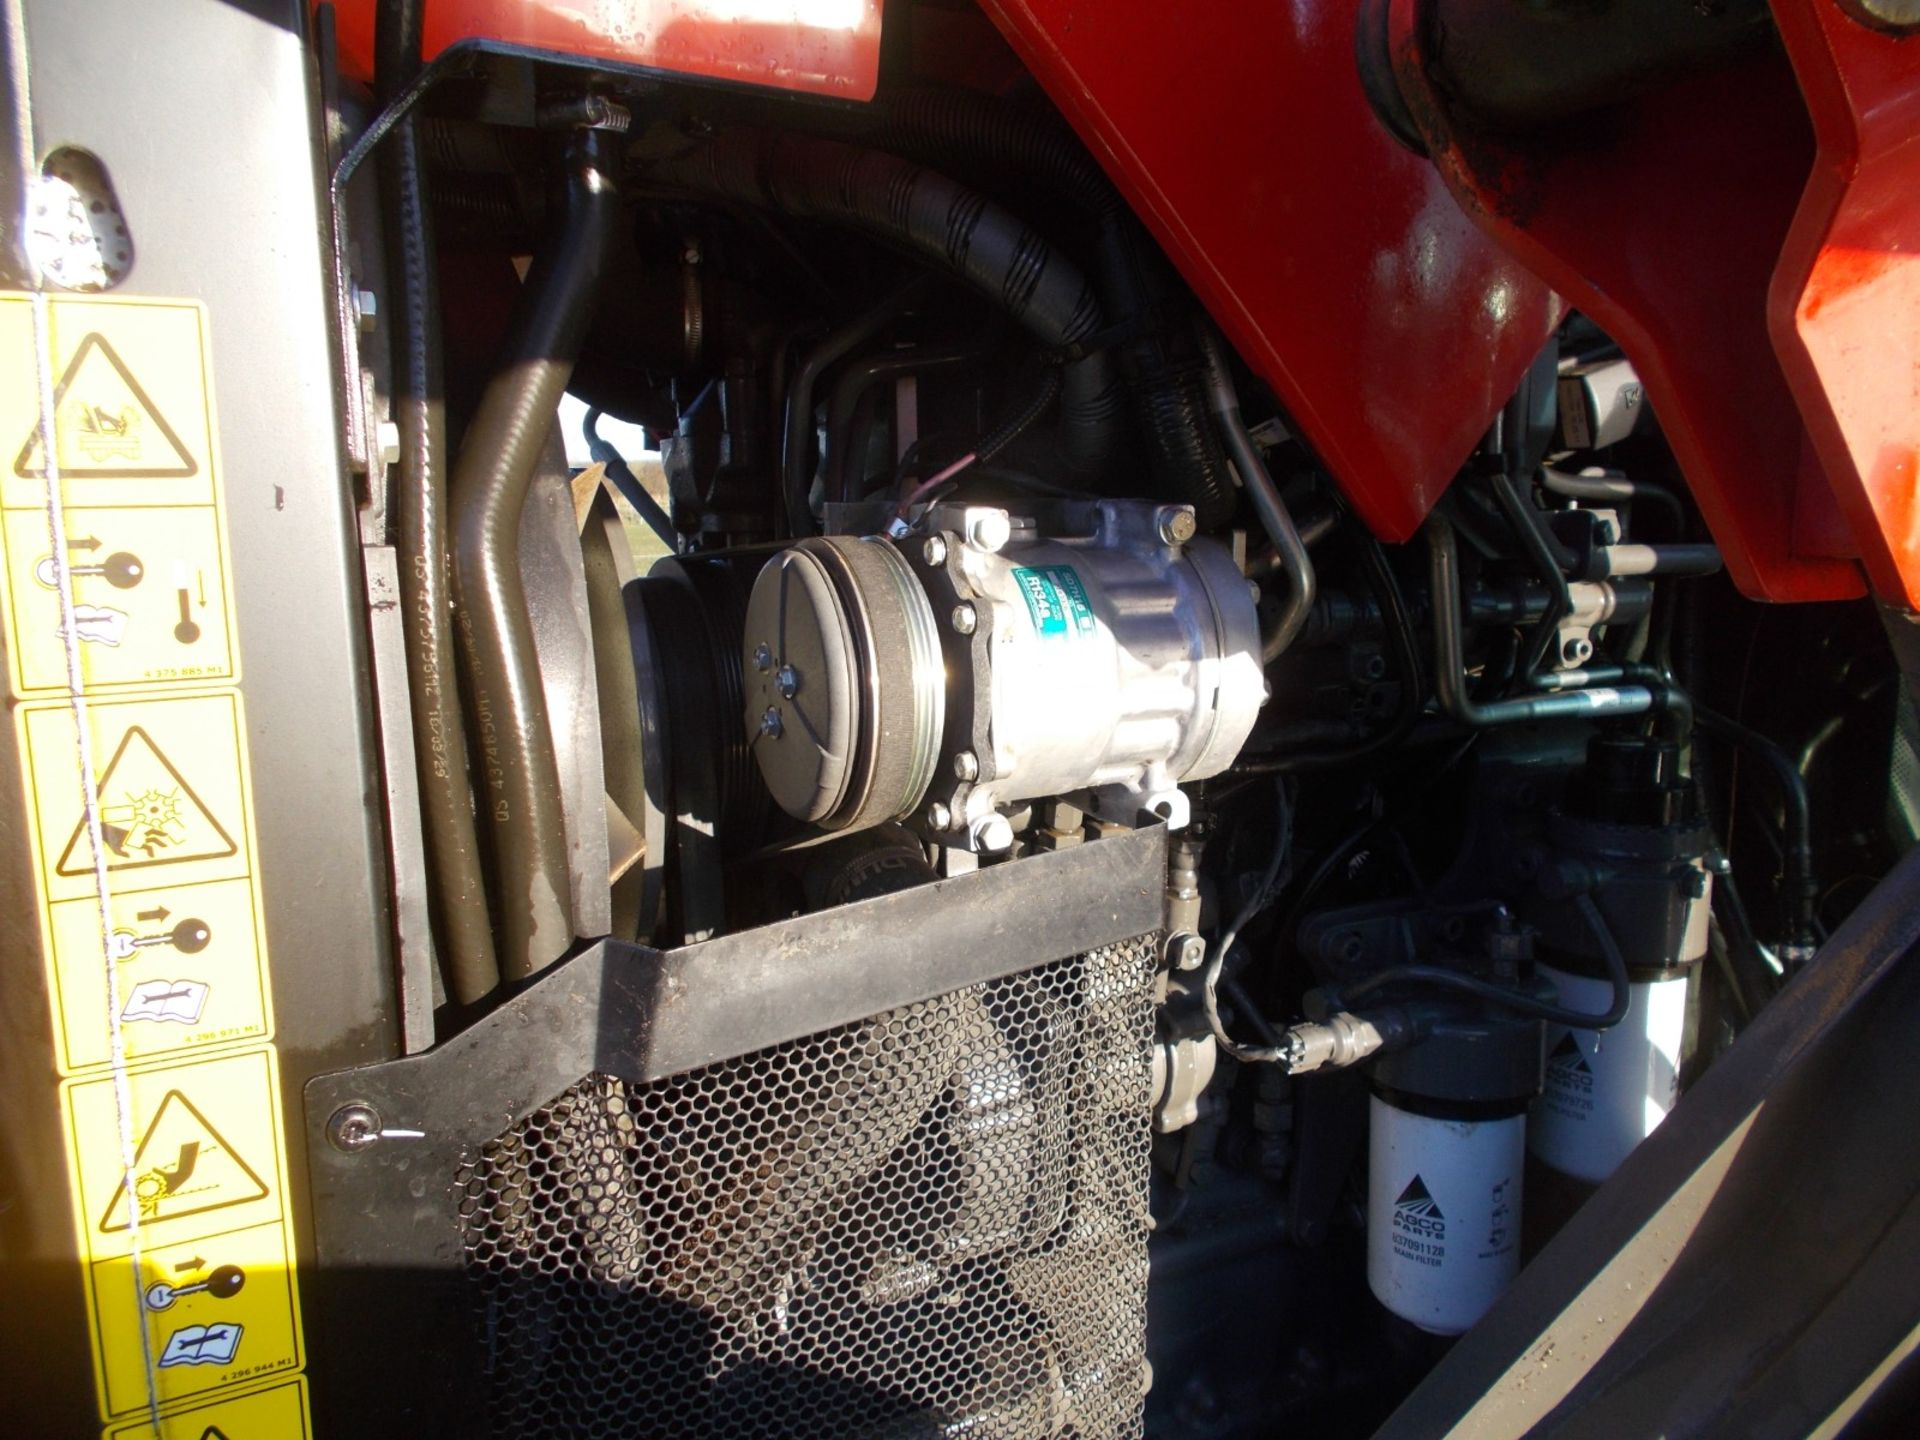 2018 MASSEY FERGUSON 4710 4WD TRACTOR WITH LOADER, AGCO 3.3 LITRE 3CYL TURBO DIESEL *PLUS VAT* - Image 12 of 21